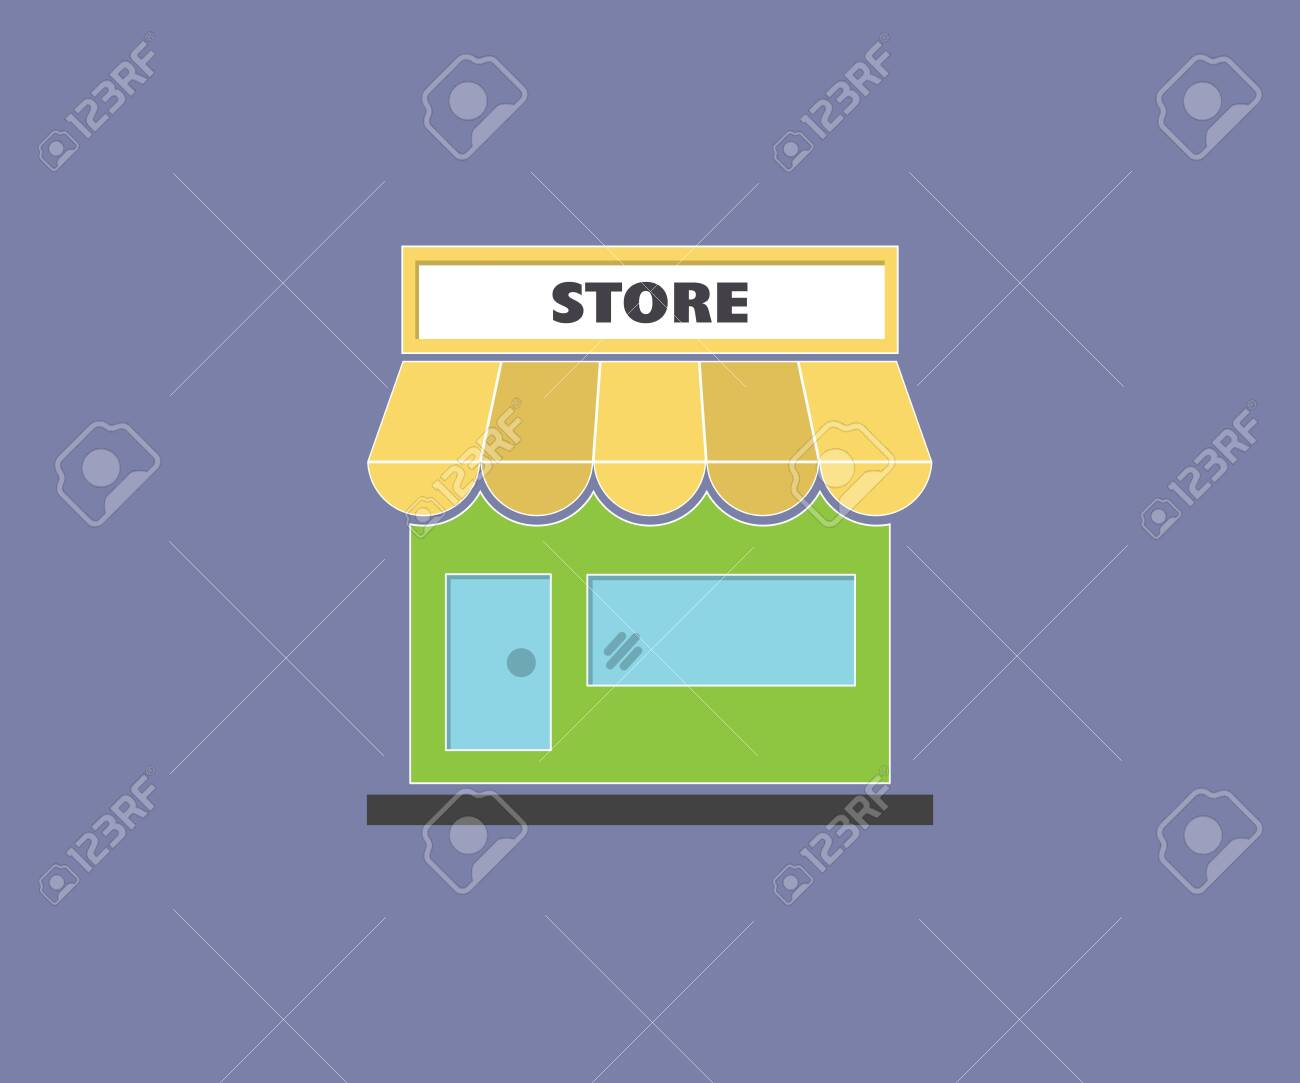 Clip art illustration of colorful grocery store, supermarket - 146834834